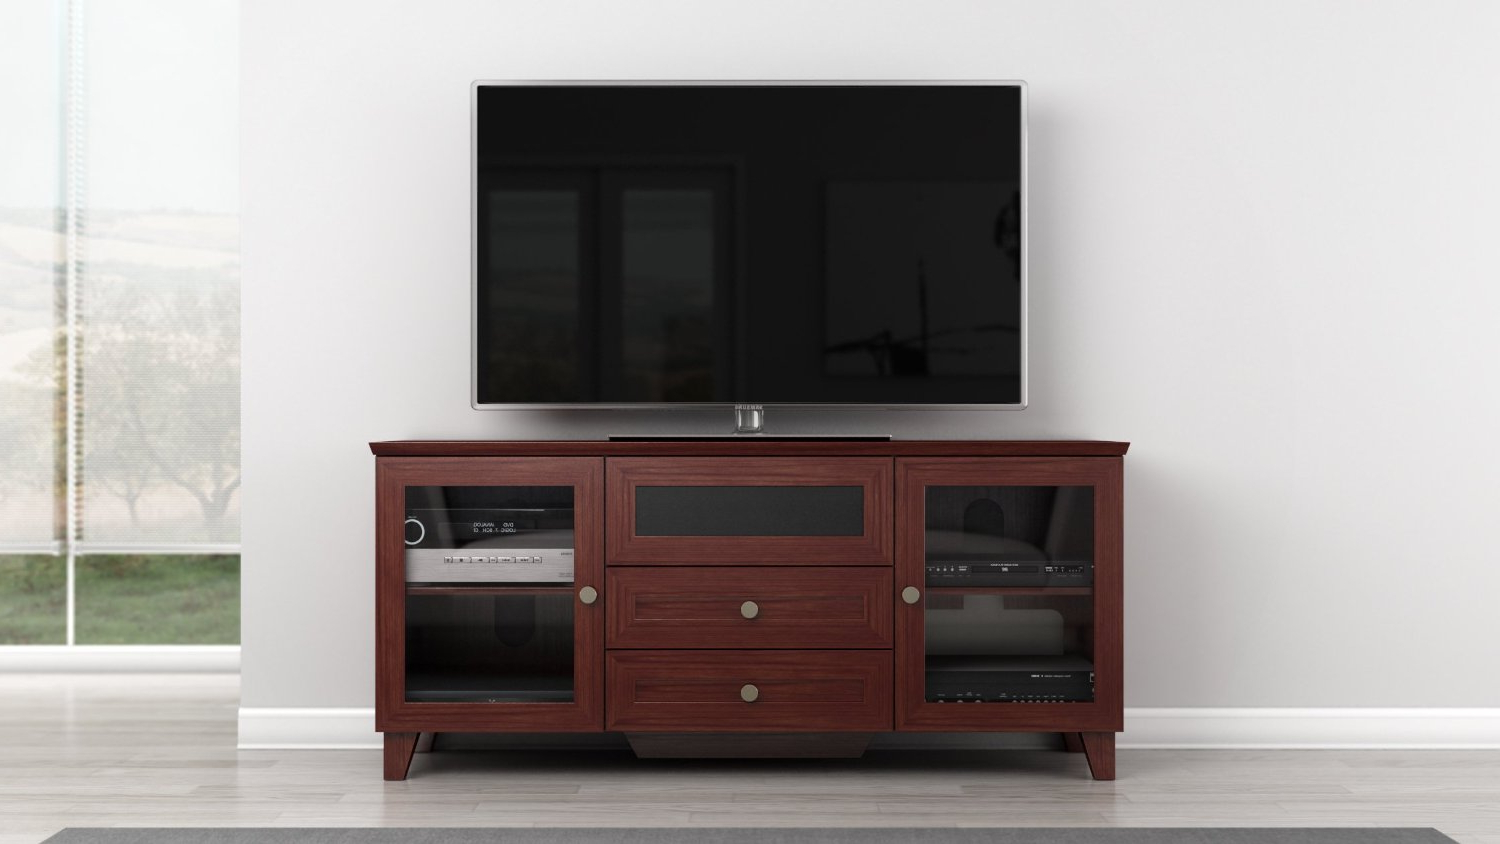 Buy Furnitech Ft61Sccfb 60 Inch Shaker Style Tv Corner Console With Throughout Most Recently Released 61 Inch Tv Stands (View 9 of 20)